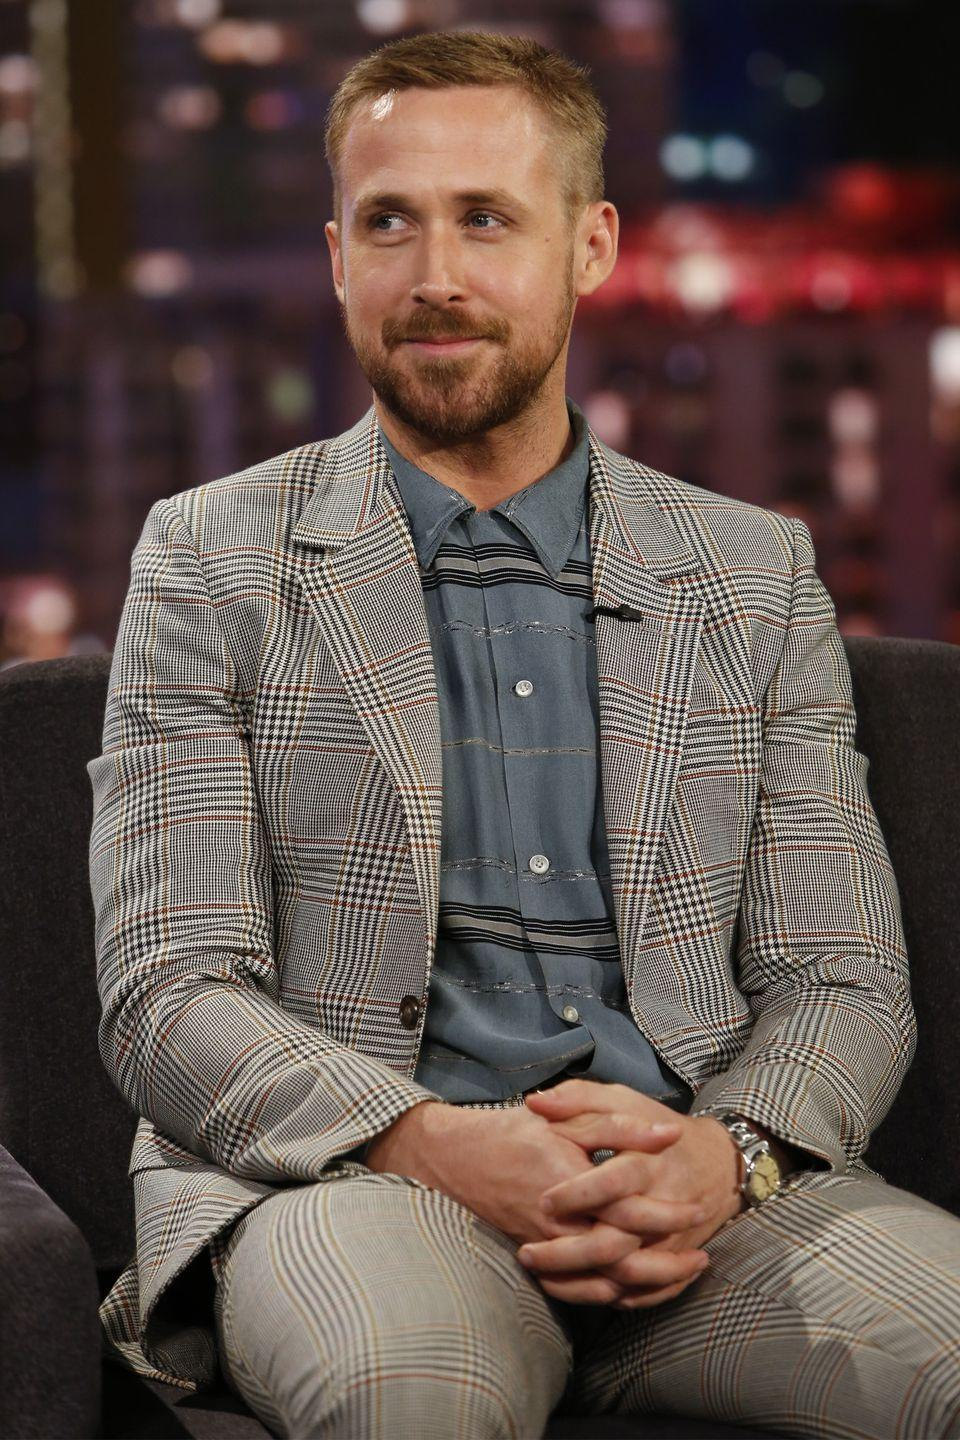 """<p>Gosling <a href=""""https://www.rollingstone.com/culture/pictures/dropout-boogie-14-celebs-who-never-got-their-degree-20140528/ryan-gosling-0206183"""" rel=""""nofollow noopener"""" target=""""_blank"""" data-ylk=""""slk:dropped out"""" class=""""link rapid-noclick-resp"""">dropped out</a> of Lester B. Pearson High School in Canada when he was 17 and went on to star in Disney's <em>All-New Mickey Mouse Club</em>.</p>"""